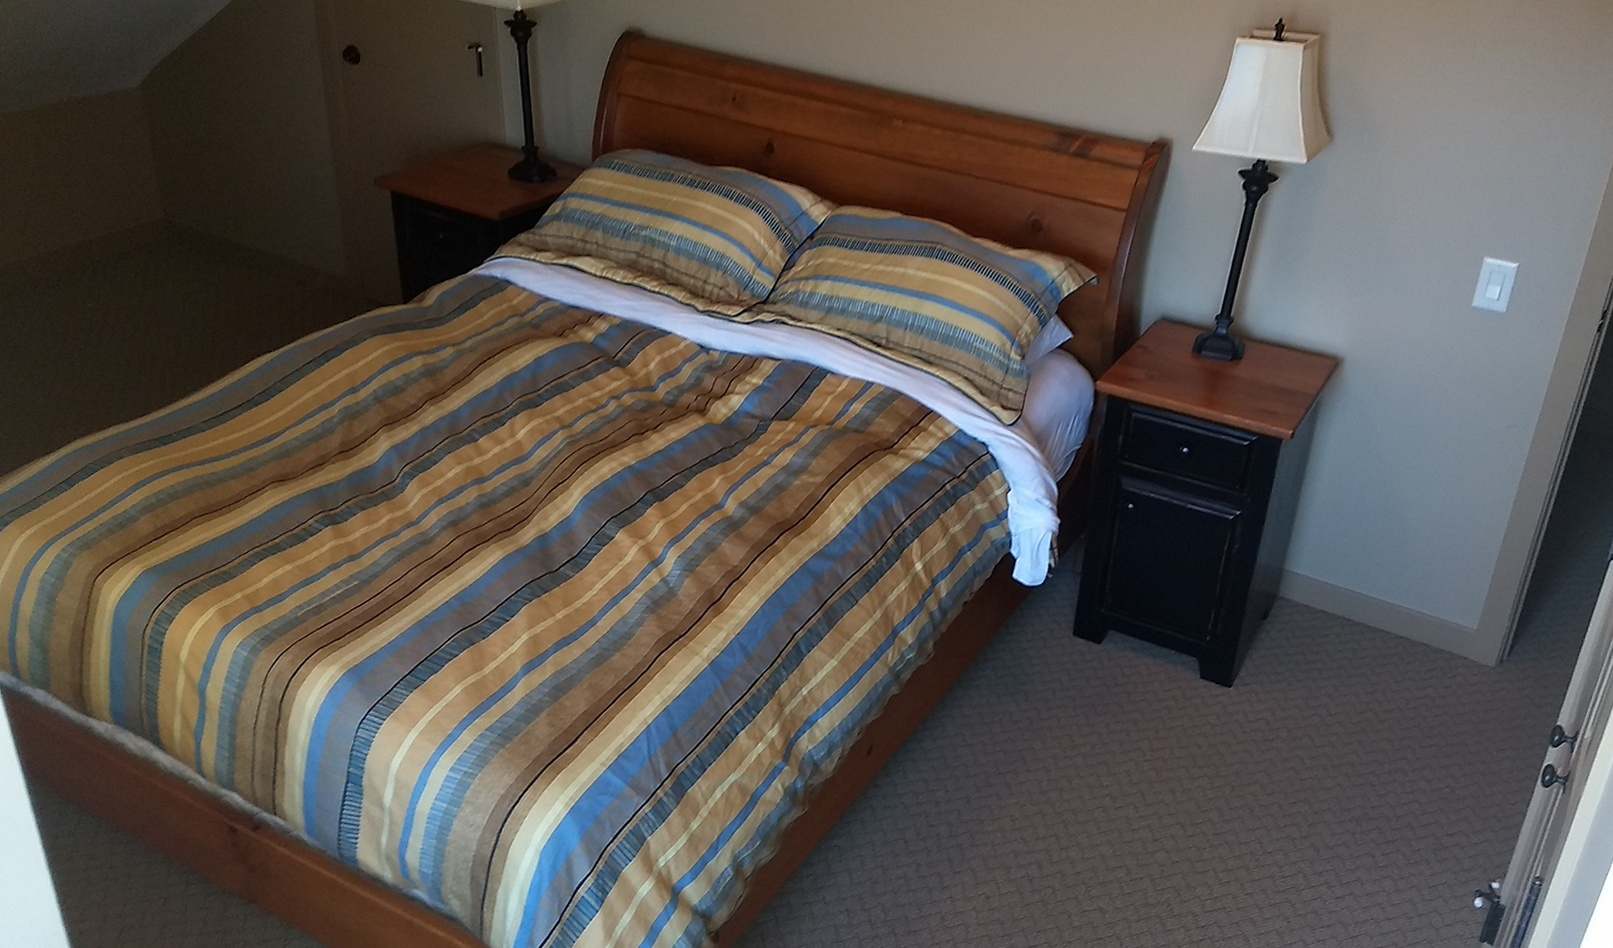 392 Master bed view 1